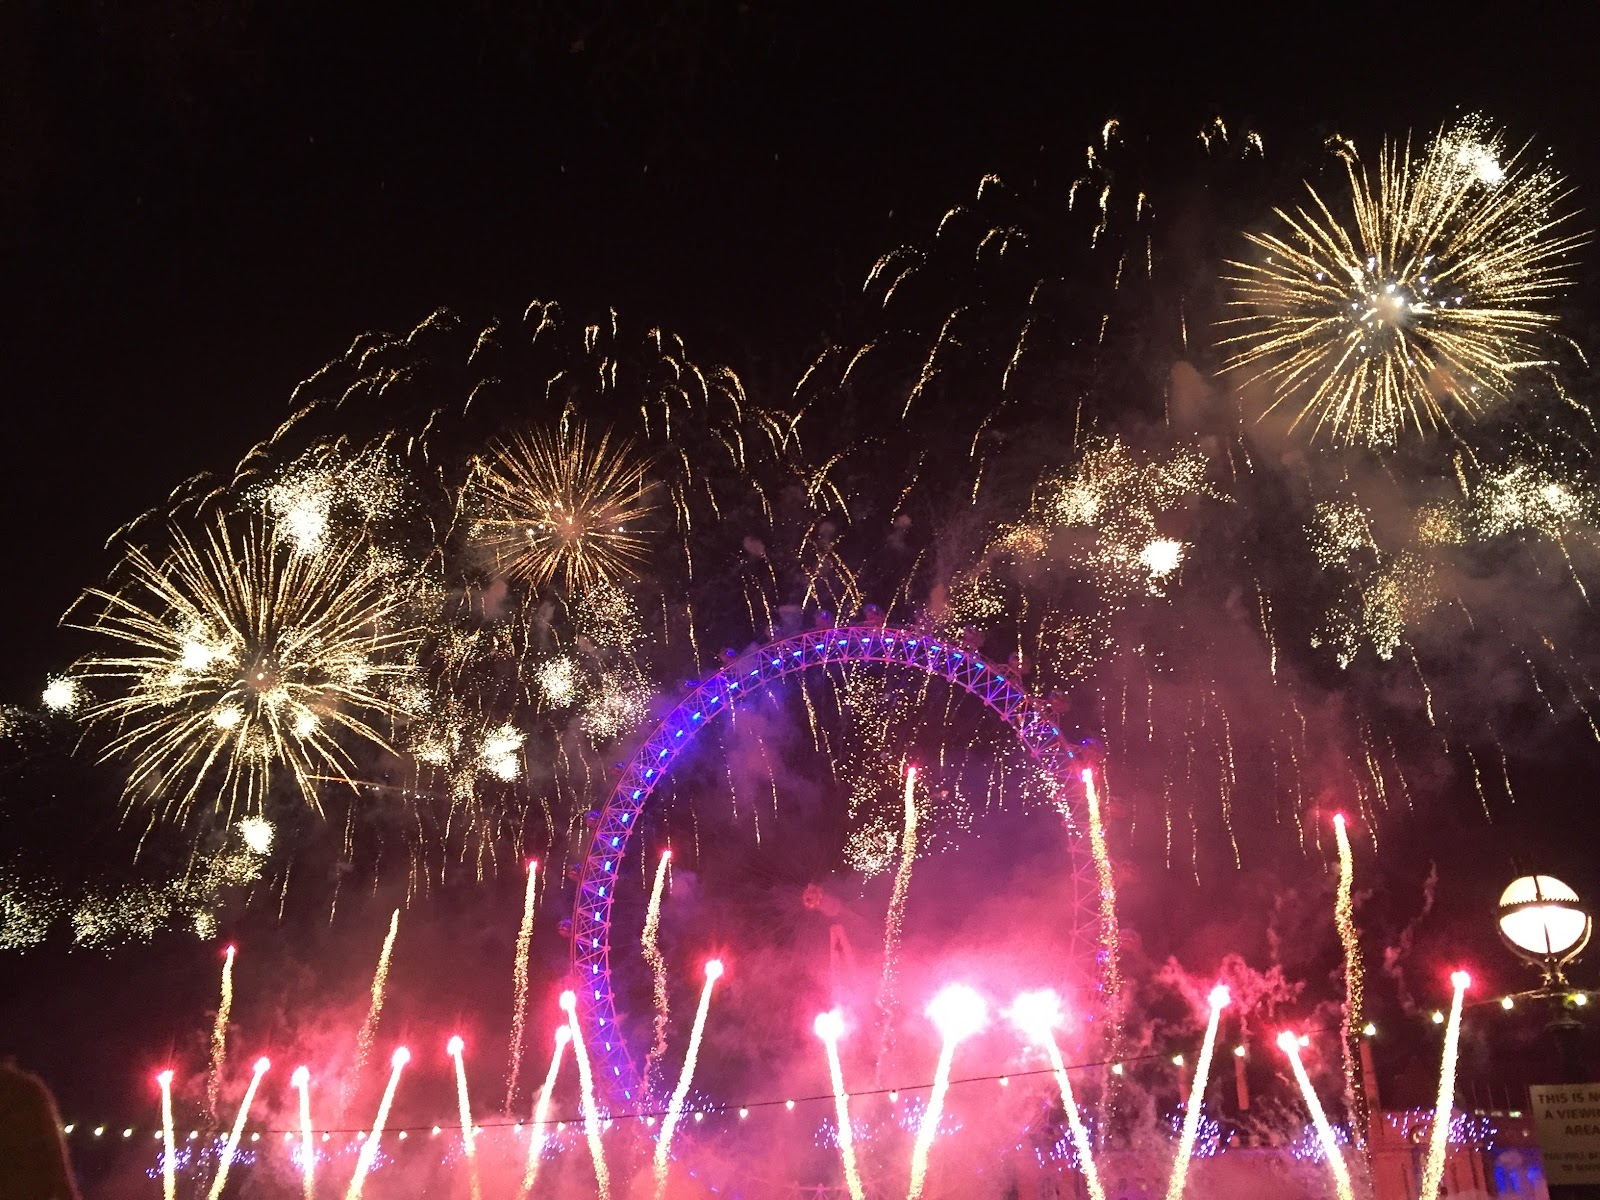 London Fireworks 2016 - New